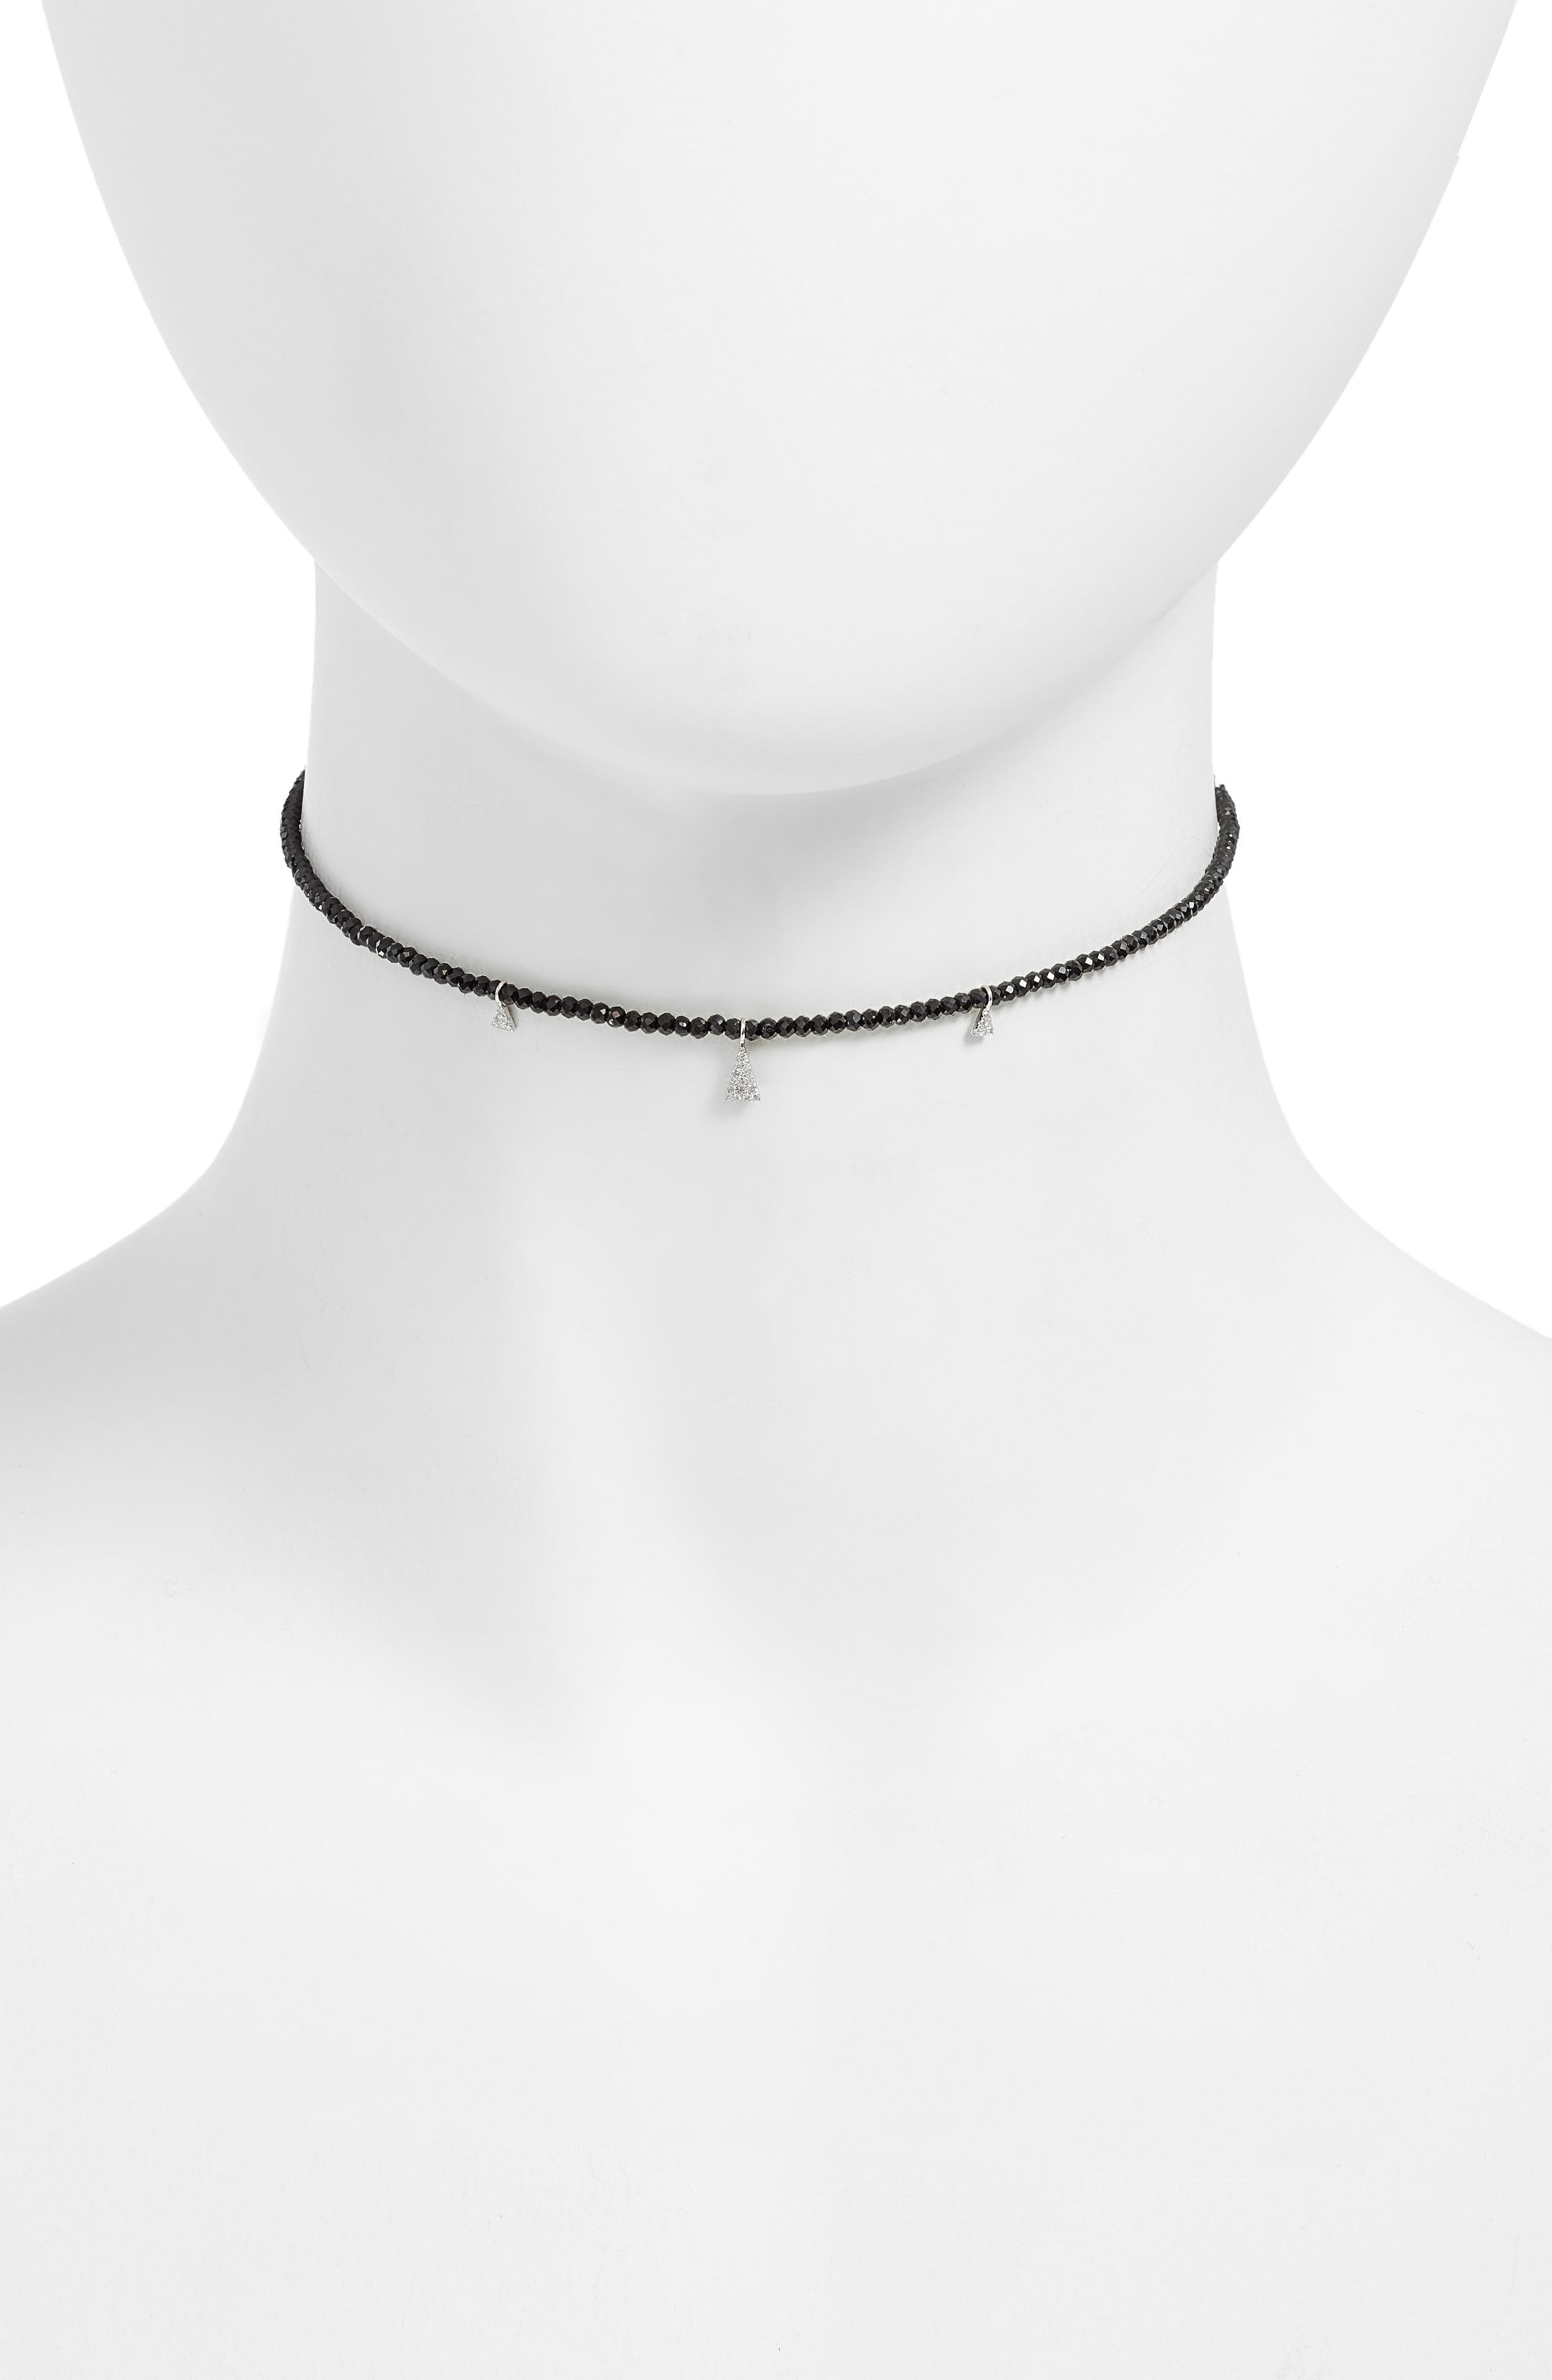 Diamond Charm Choker Necklace,                         Main,                         color, White Gold